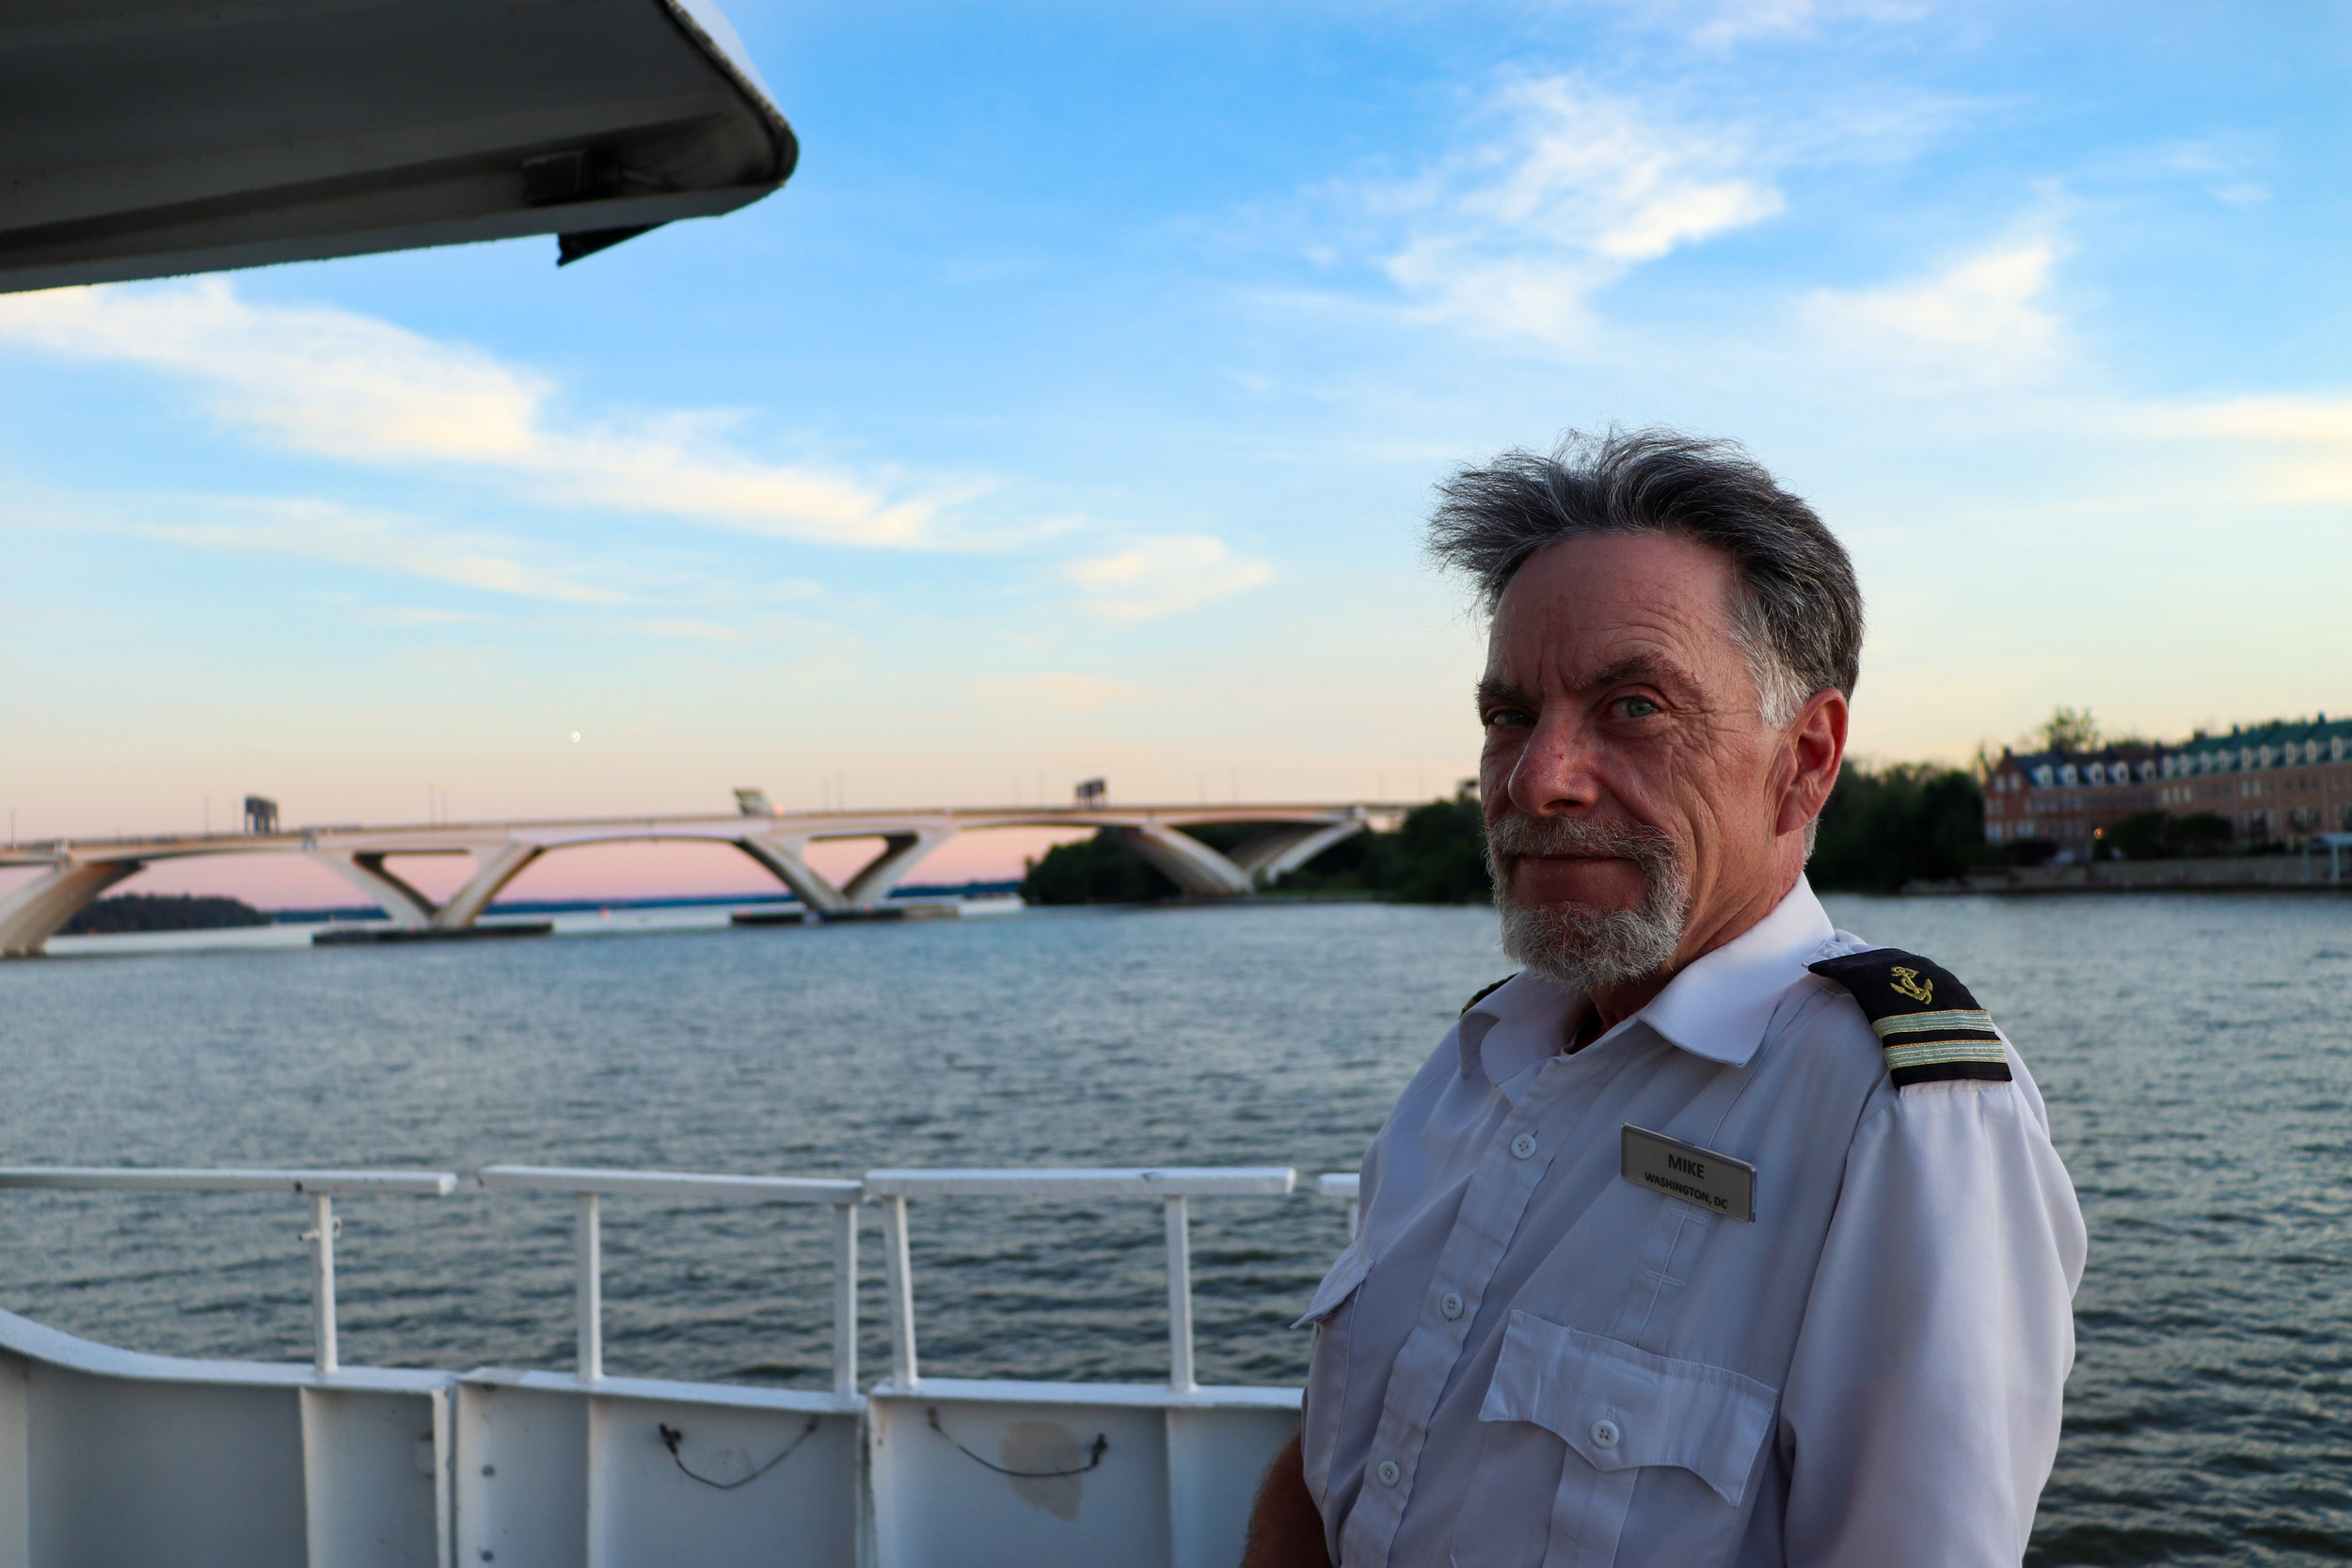 """Mike, an employee for a Potomac River cruise ship for the last six years, poses for a photo.   Q. """"Can you recall any of the most interesting days/moments of your job?""""  """"There's lots of little bits and fragments that you remember. You know, some nights you can see speckled stars across the sky accompanied by patches of cloud, with the moon glistening over the water, and it just makes for an amazing photograph ... I've never had any accidents or people falling into the water before, thank god. But one time we were pulling into the harbour with a group of kids, and something happened on the dance floor that caused someone to get injured. And I saw one kid crying and asked what was wrong, and he replied by saying, """"OH THE HUMANITY!"""" So I guess he really hadn't seen too many bad things in his life yet."""""""